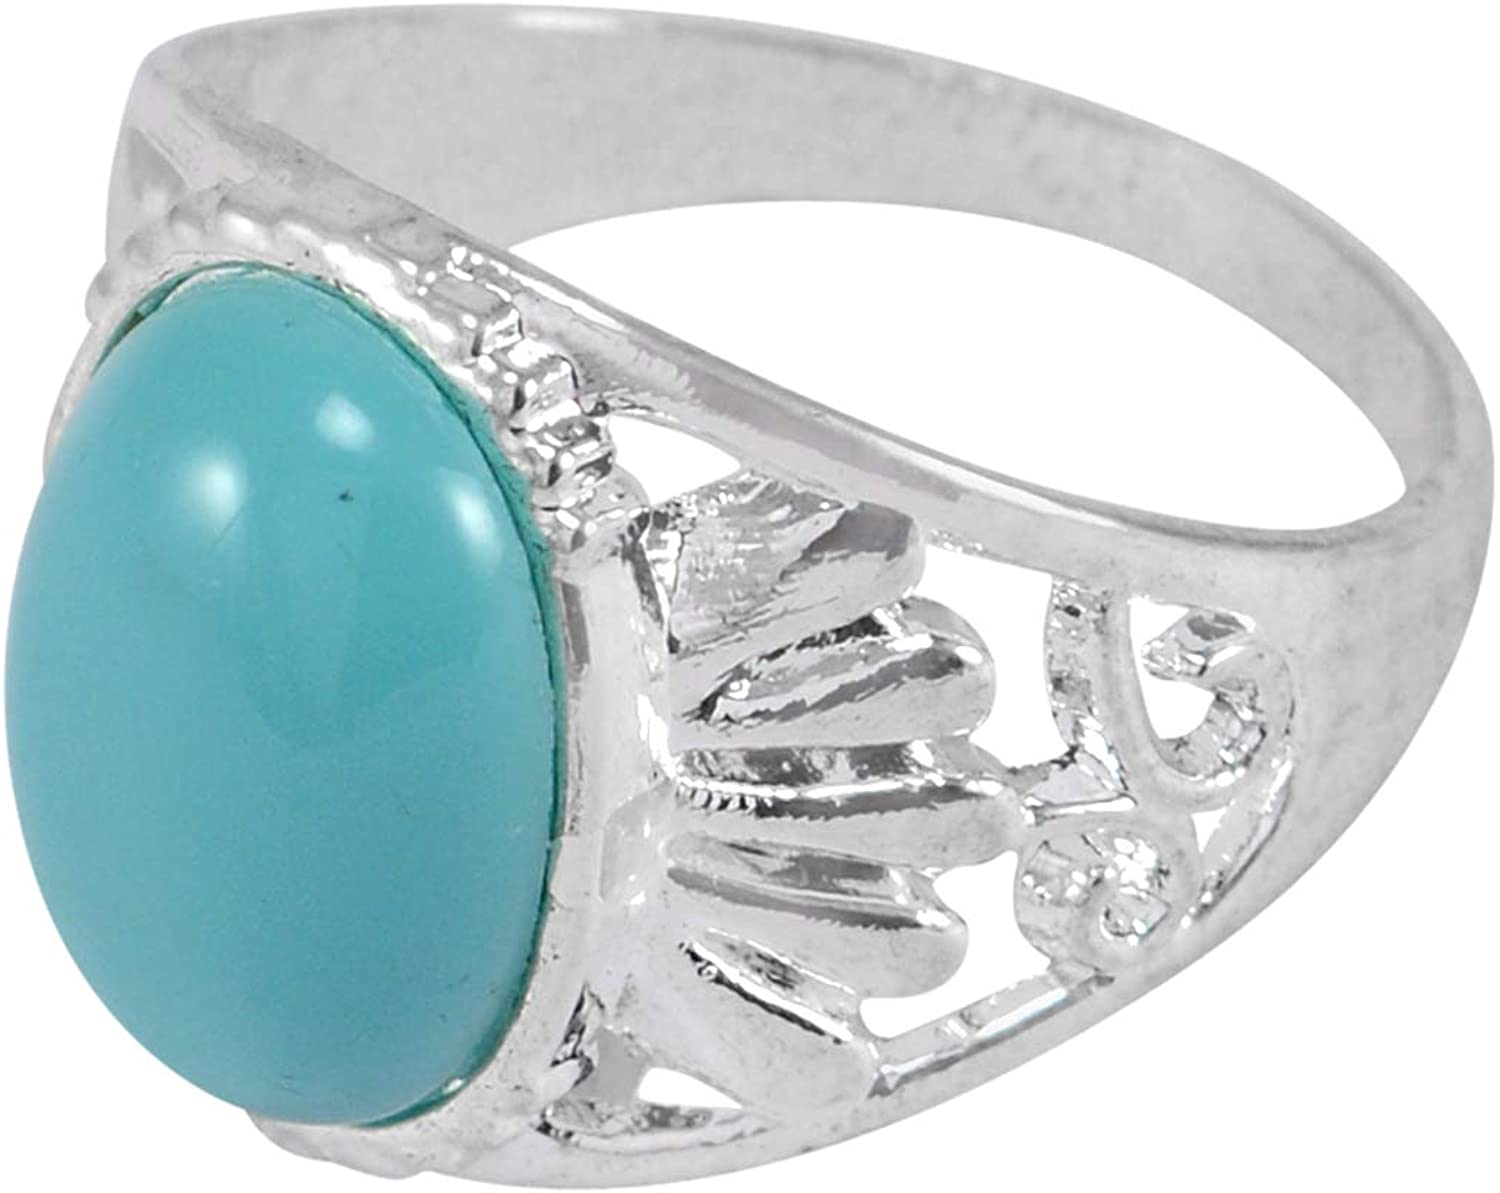 Saamarth Impex Straight Shank, Silver, Jaipur Rajasthan India Blue Combination, Oval Blue Stone, Handmade Jewelry Manufacturer 925 Sterling Silver Plated Ring